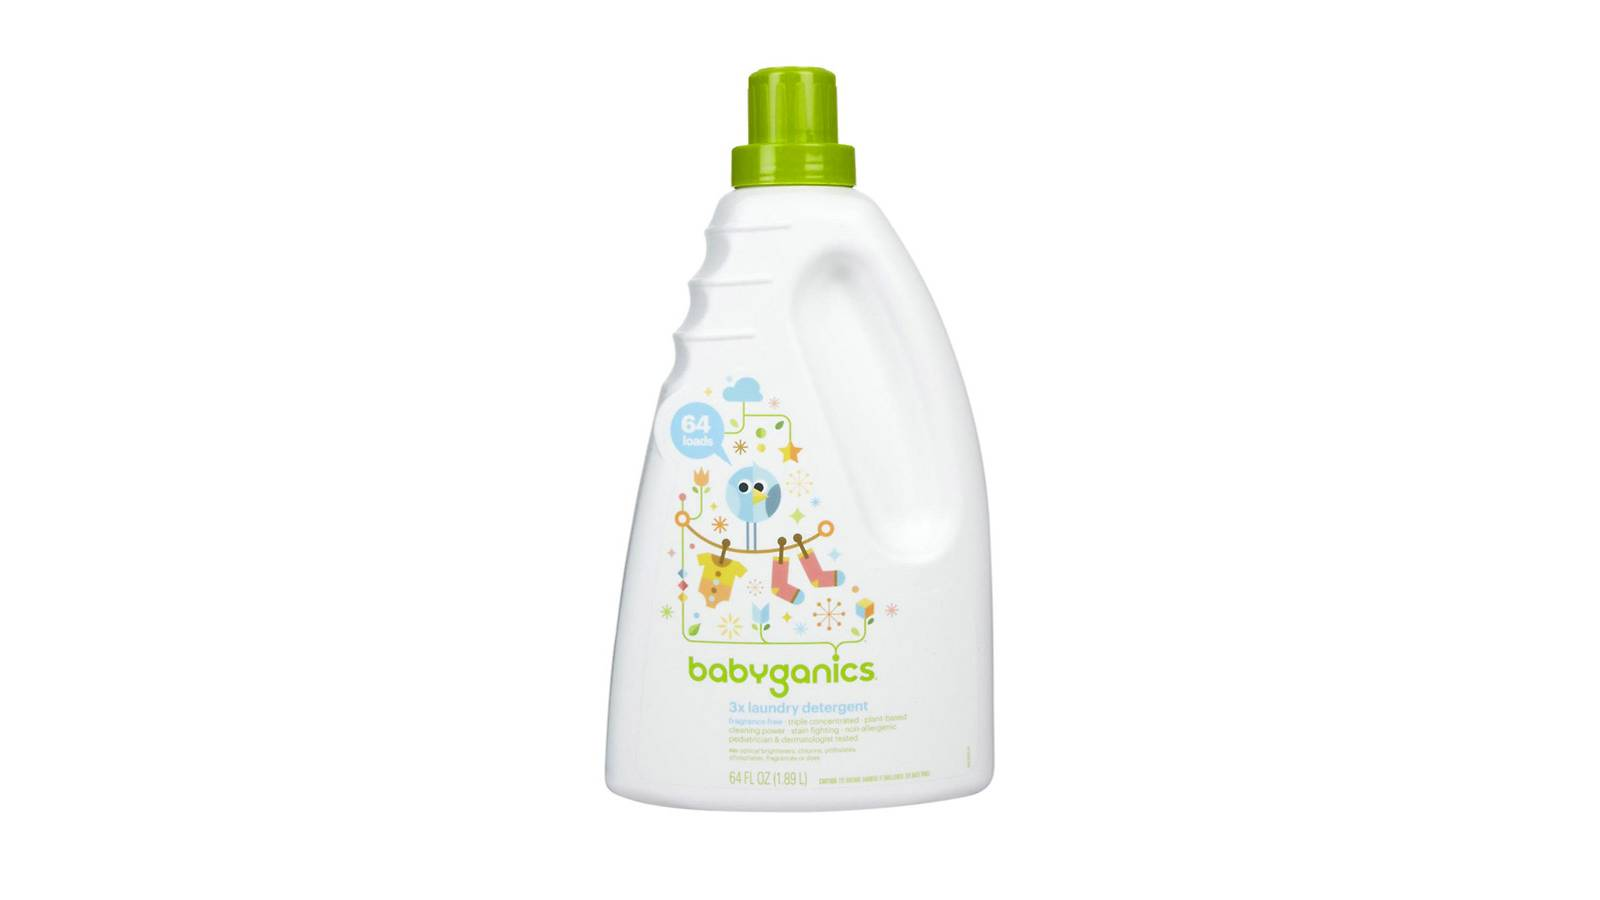 Babies-BUYER'S-GUIDE-7-best-laundry-detergents-for-baby-BABYGANICS